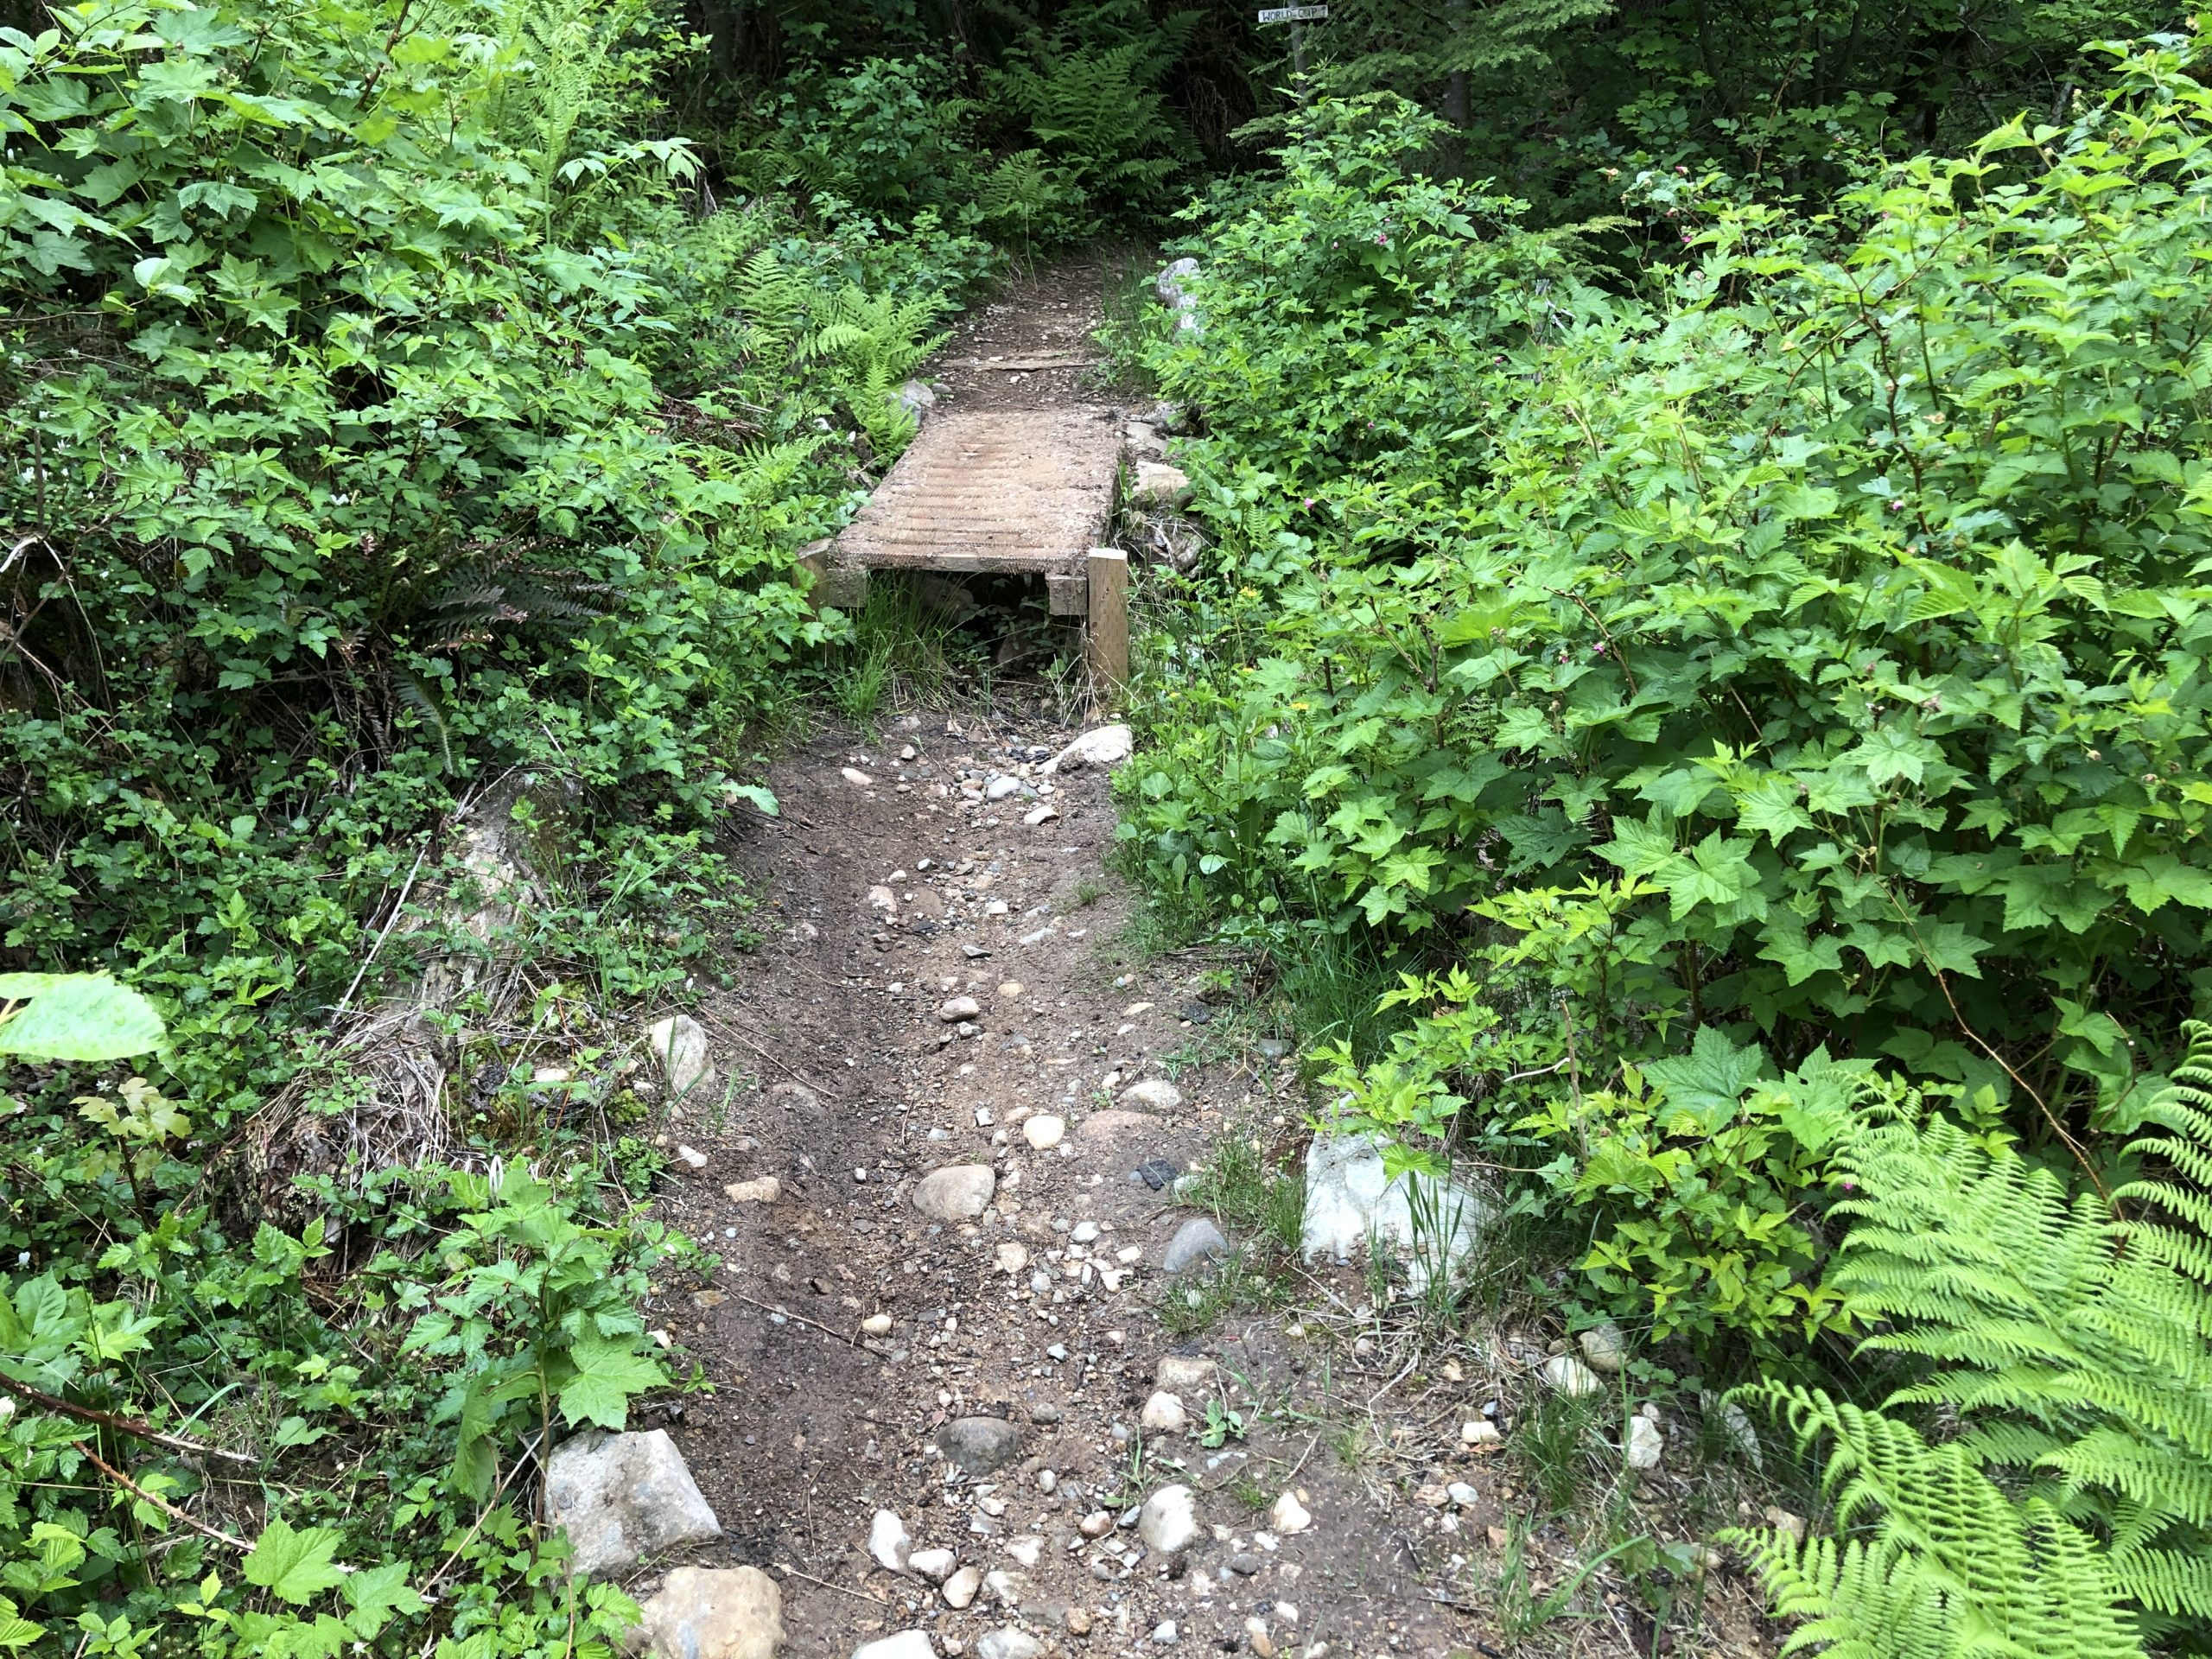 A small wooden bridge on a trail